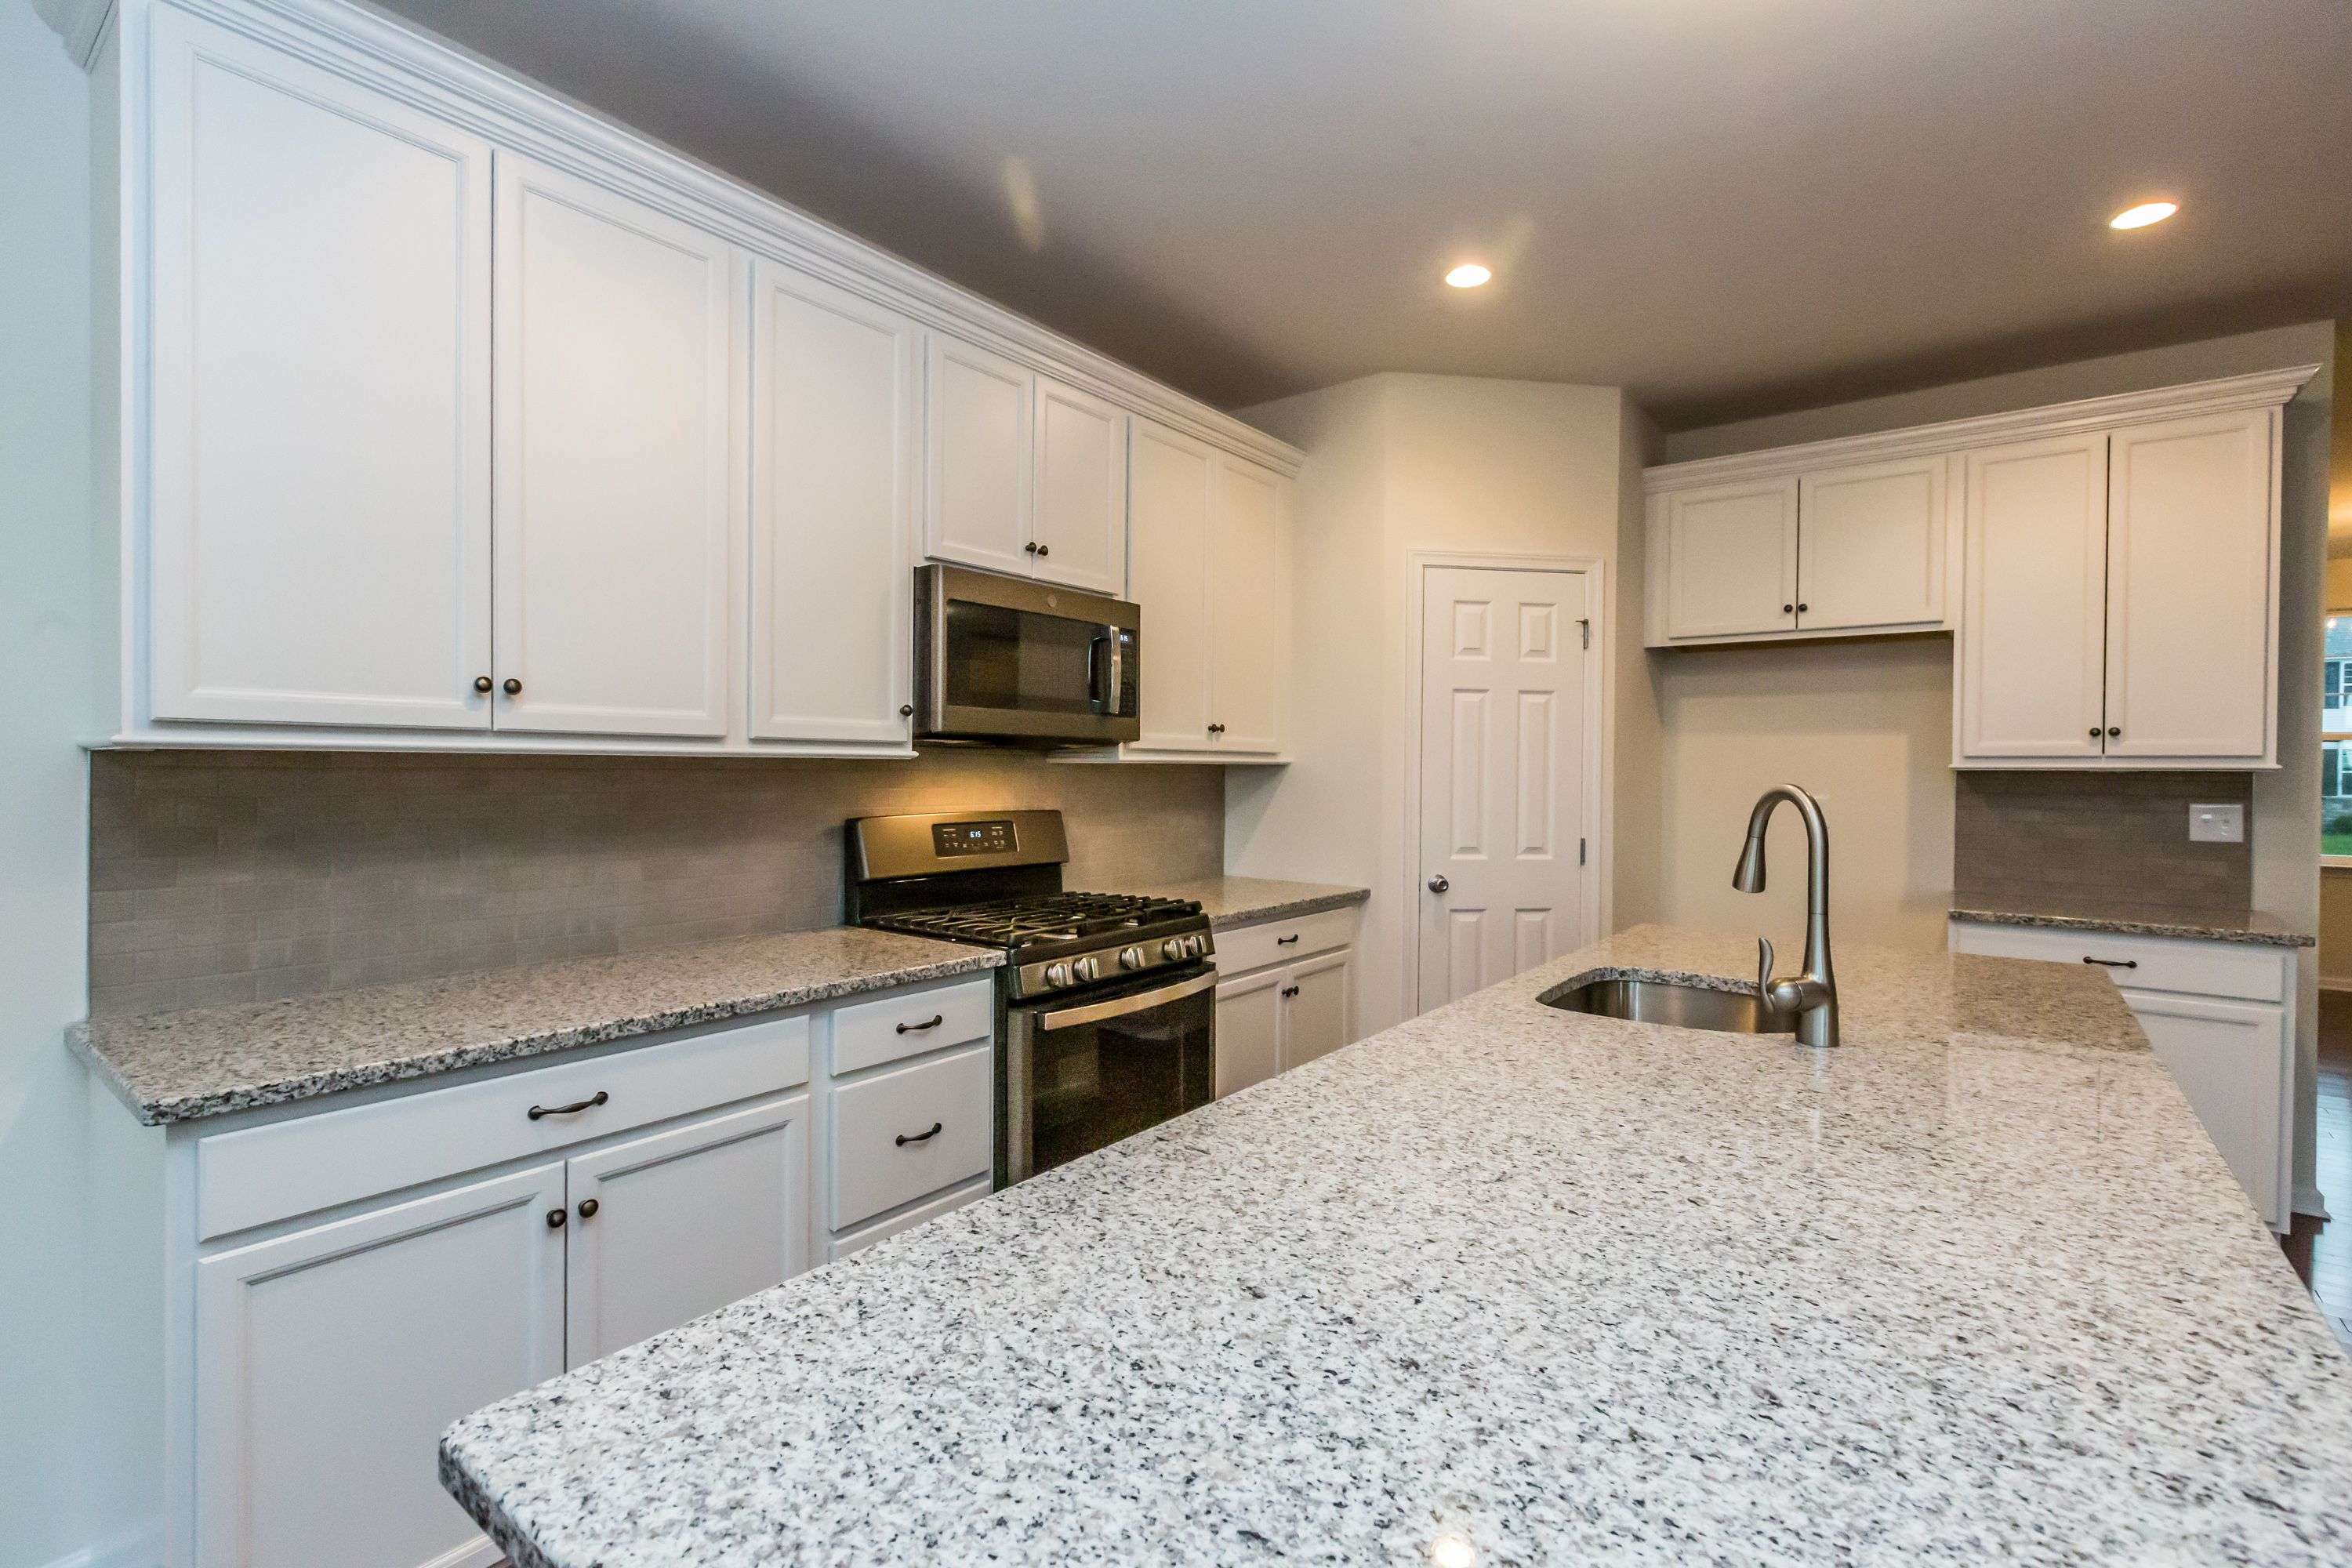 Kitchen featured in the Mulberry By Rouse Chamberlin Homes in Philadelphia, PA